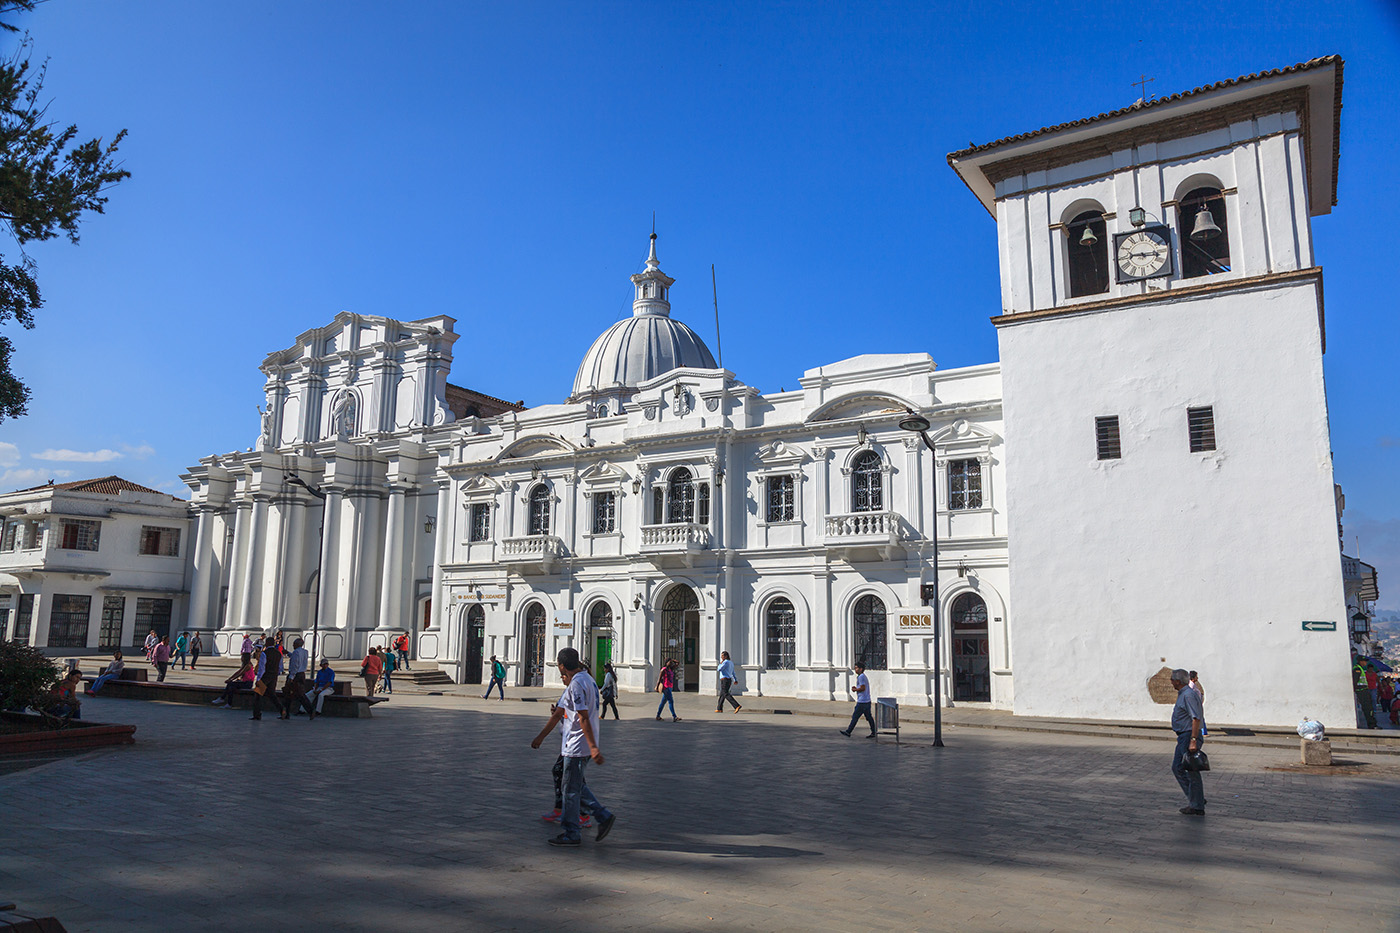 COL_Popayan_Neptuno_freewithcredit (2)